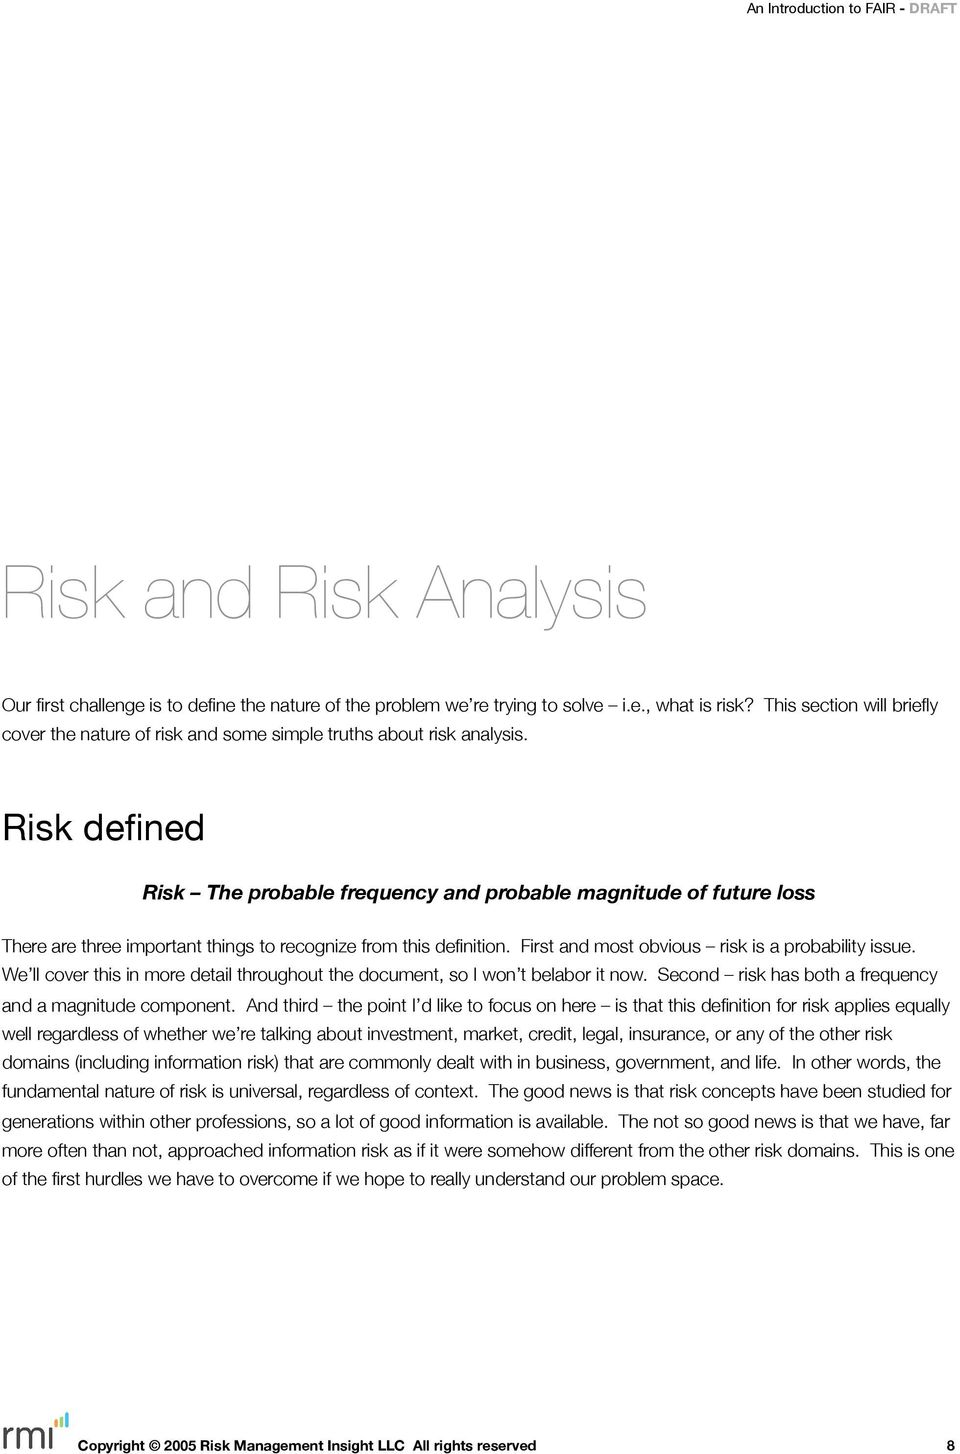 Risk defined Risk The probable frequency and probable magnitude of future loss There are three important things to recognize from this definition. First and most obvious risk is a probability issue.